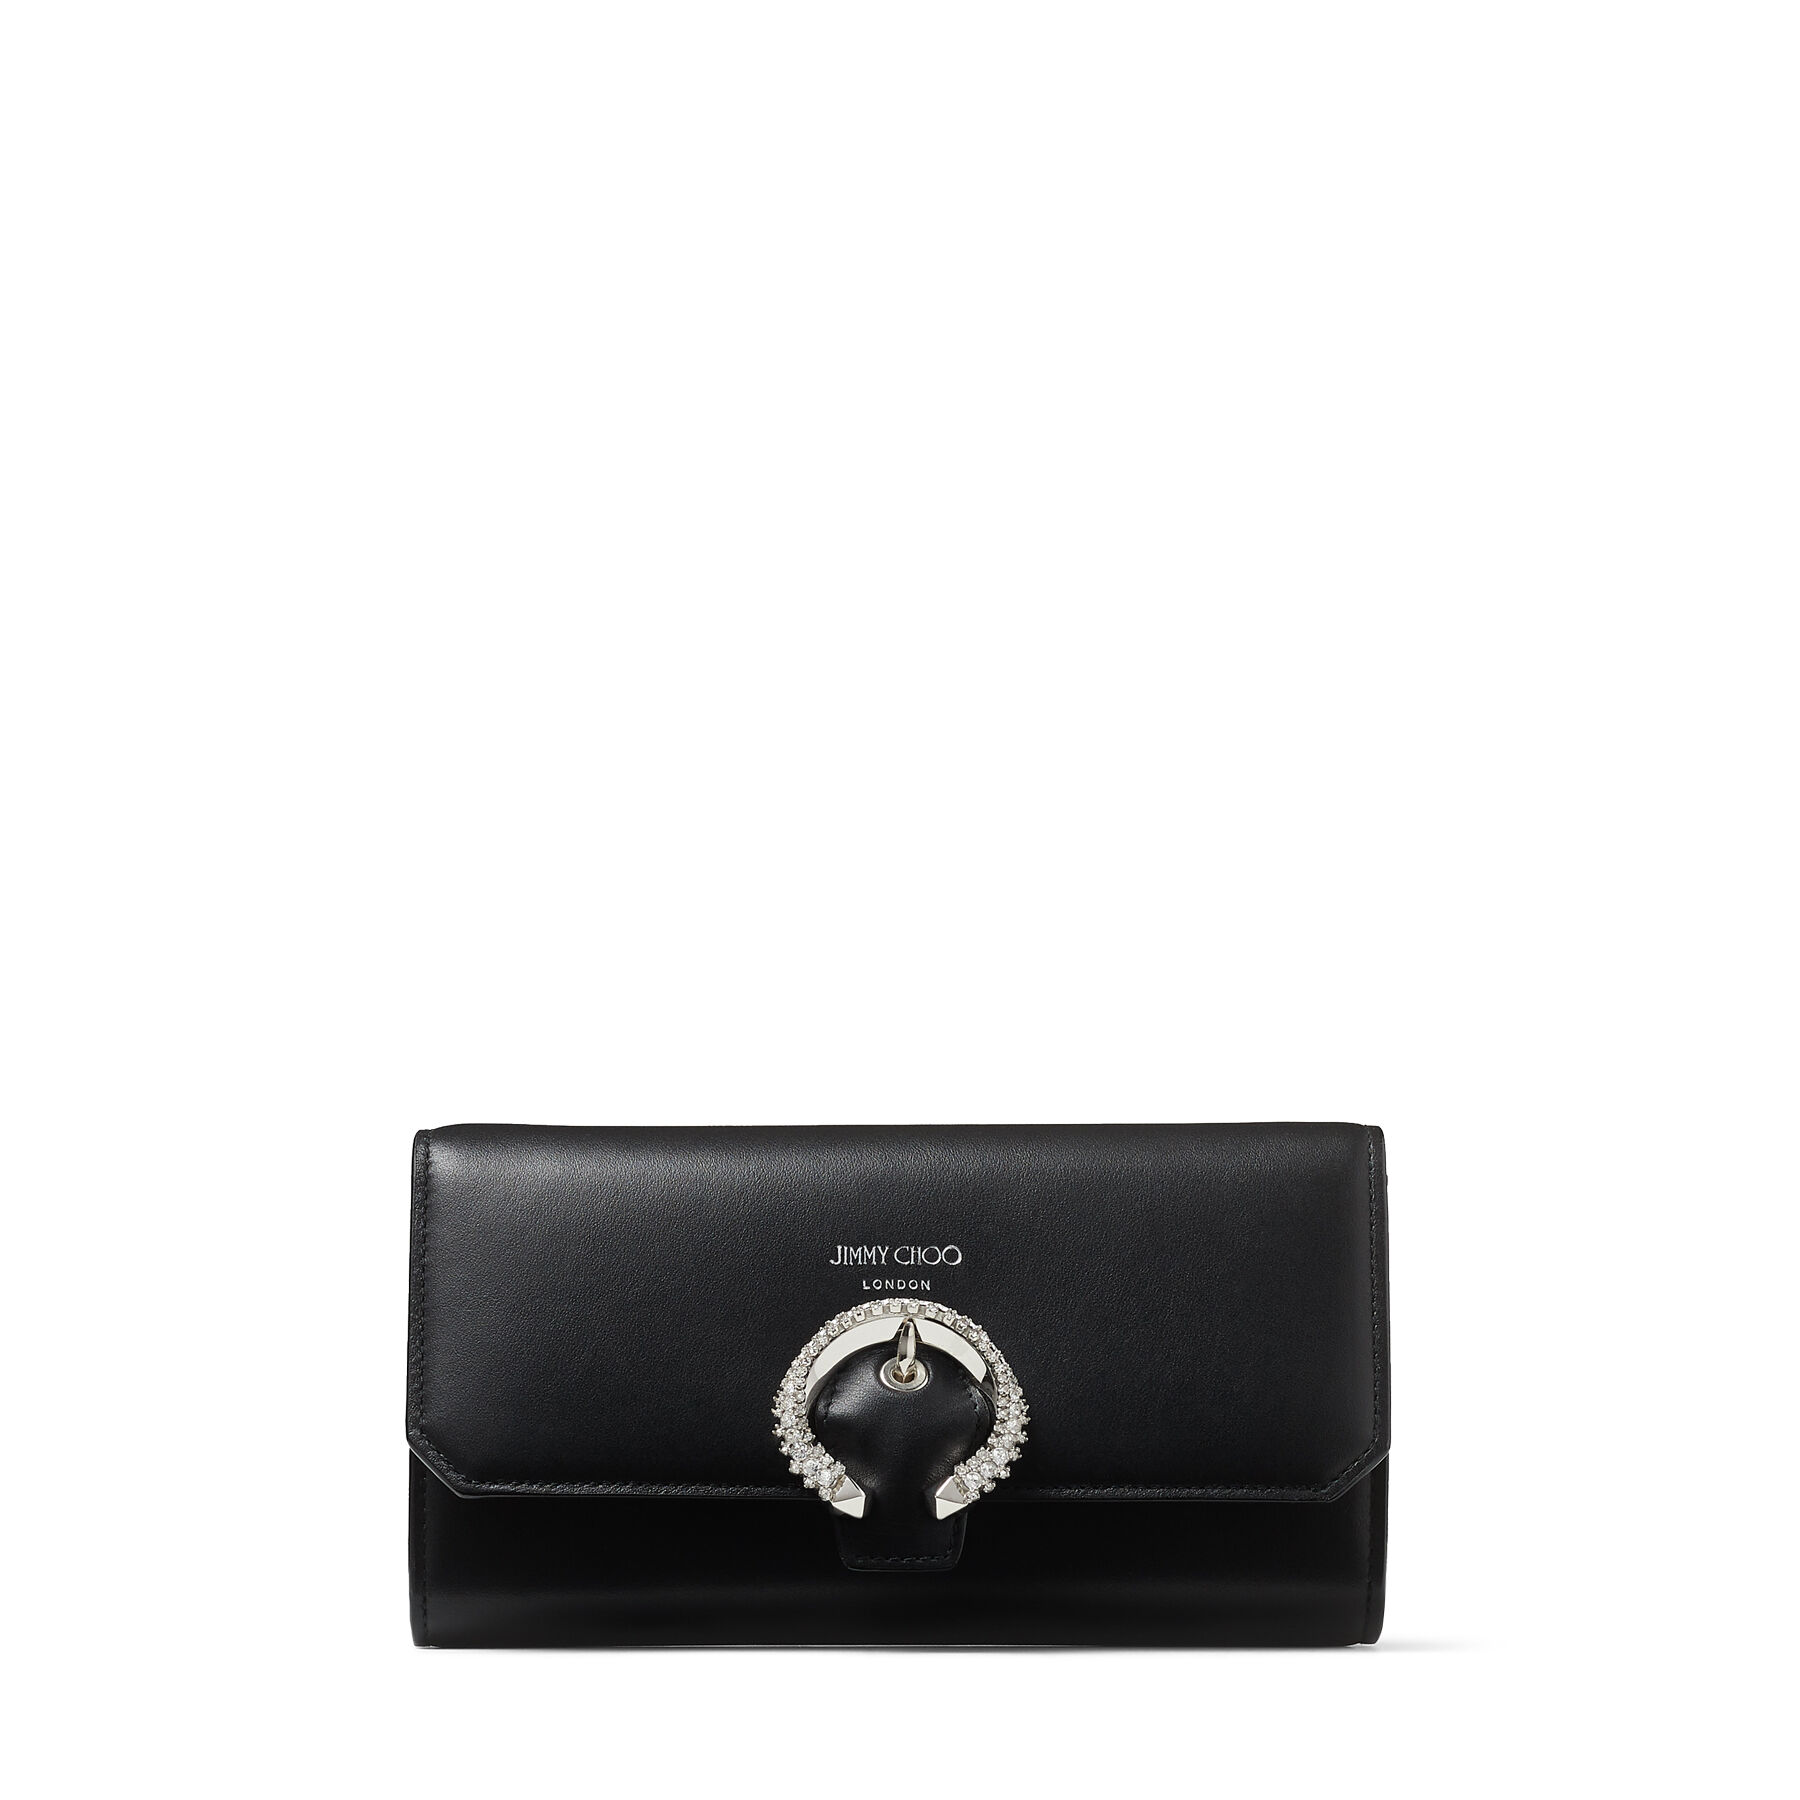 WALLET W/CHAIN - Black Smooth Calf Wallet with Crystal Buckle